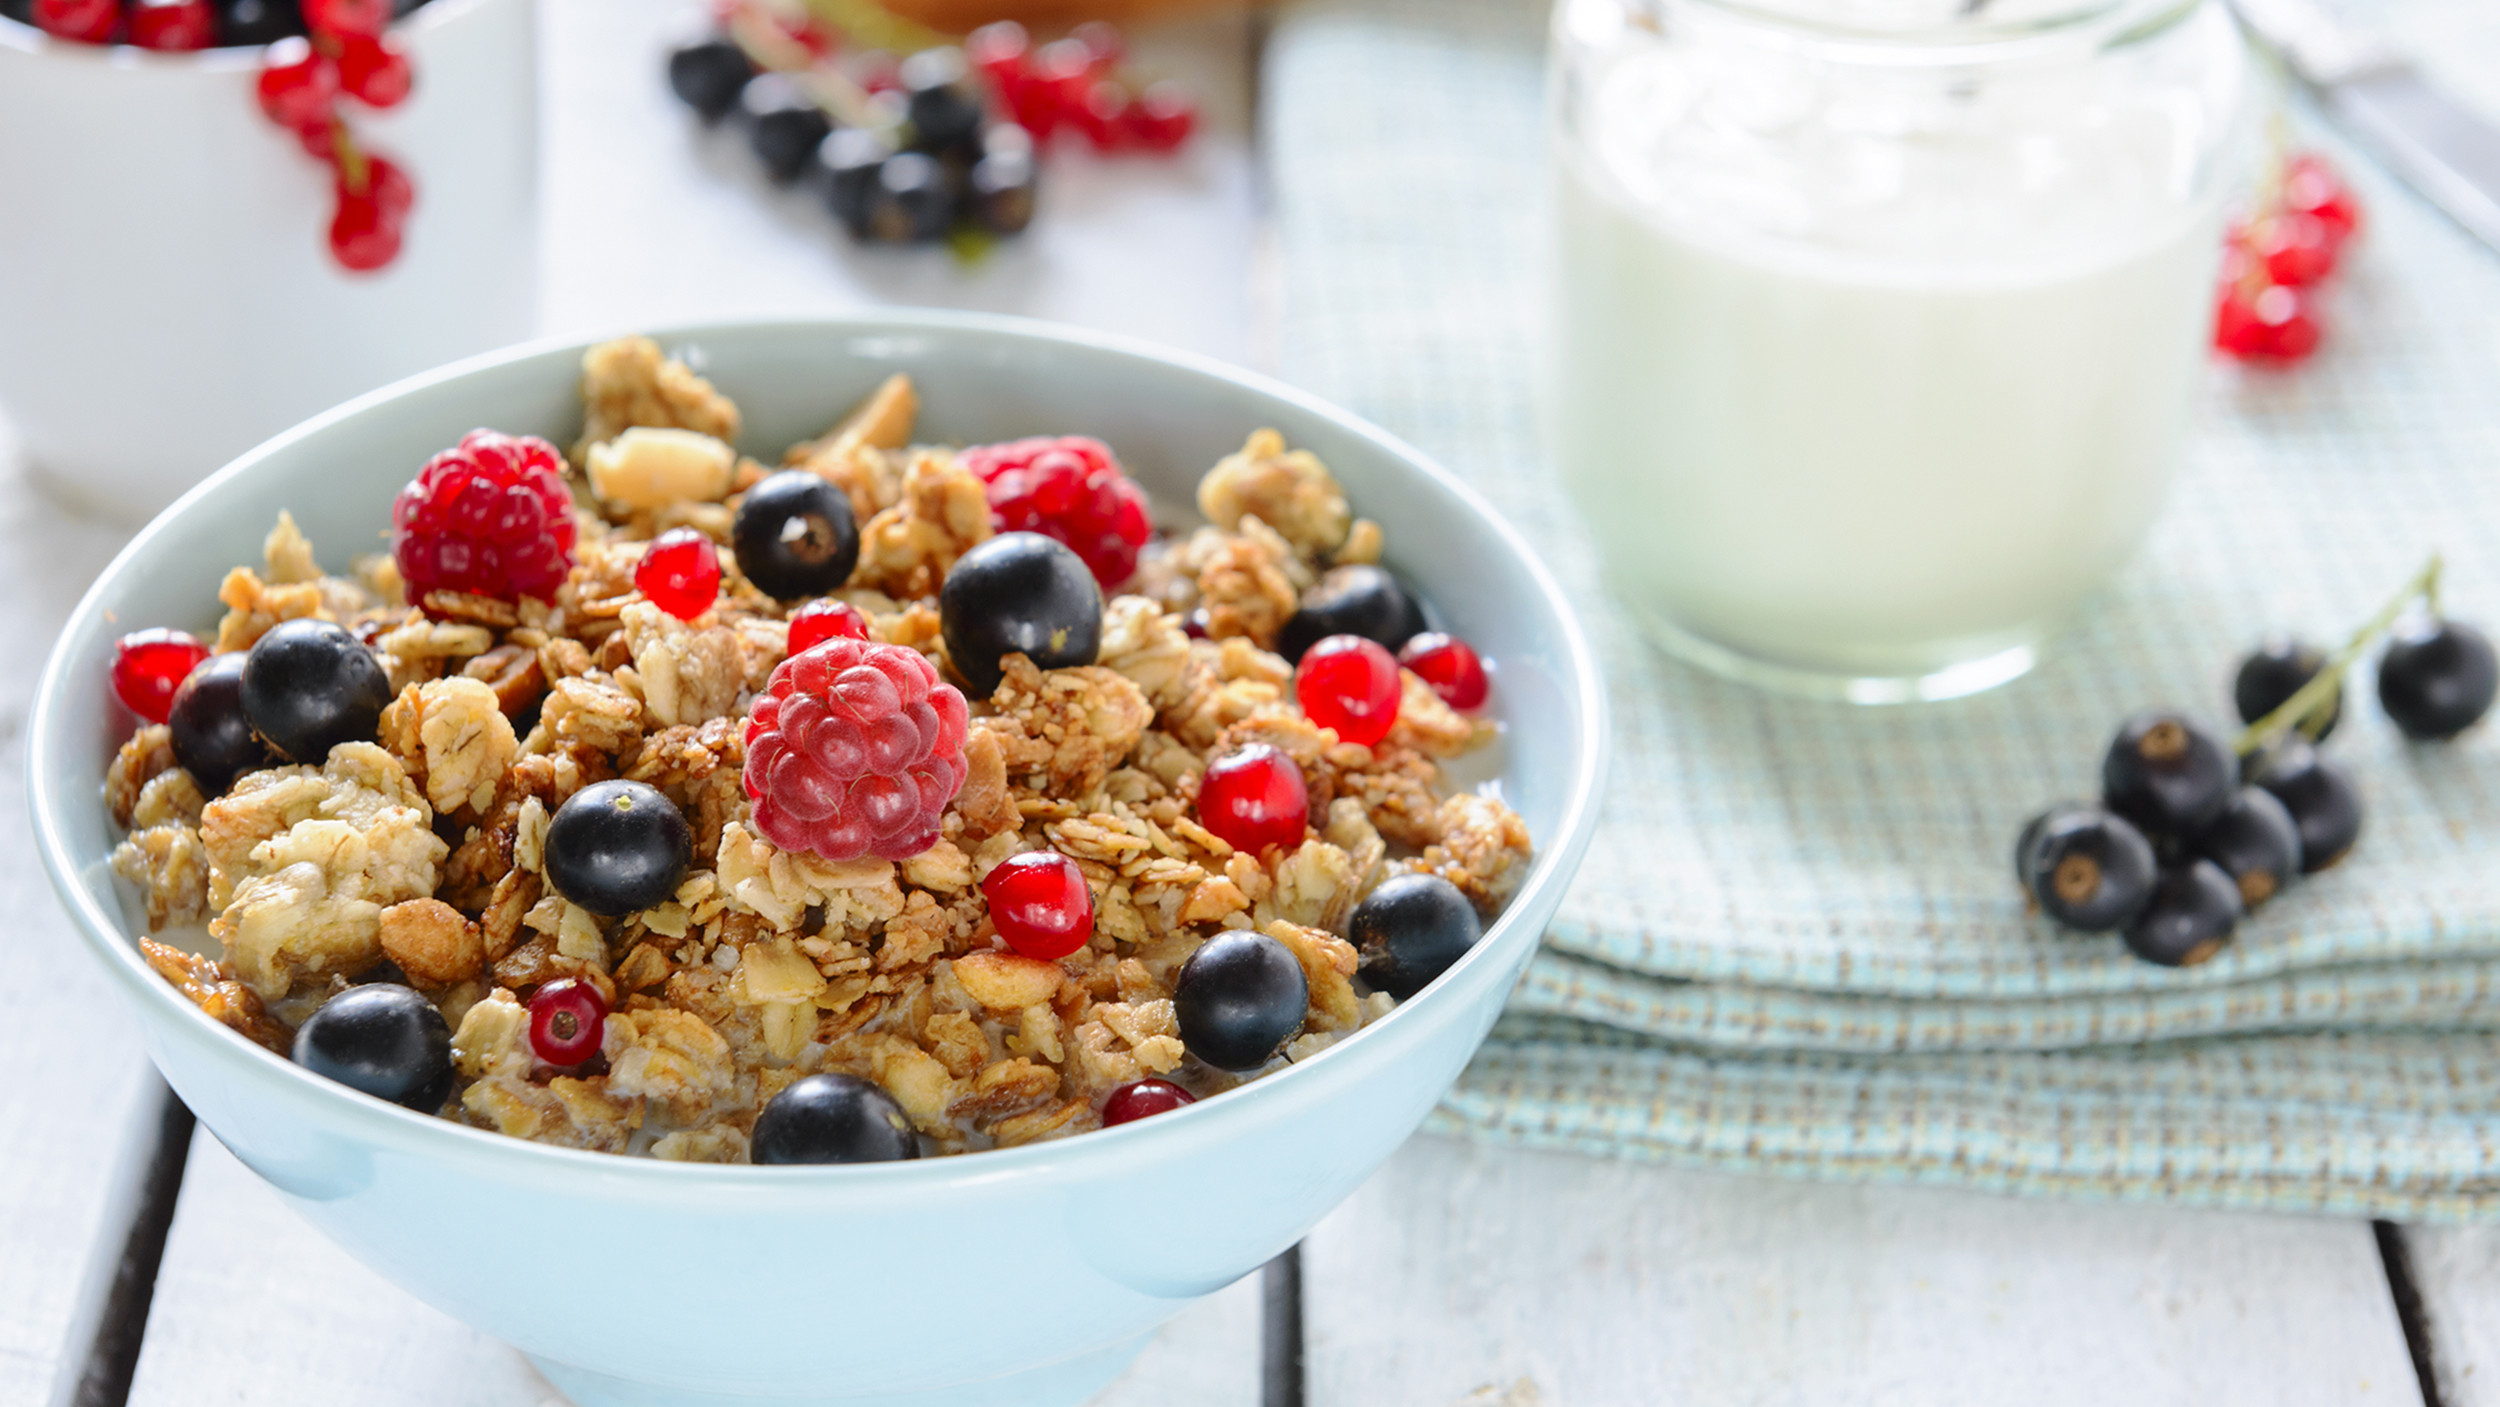 Healthy Breakfast Cereal  The healthiest breakfast cereals what to look for